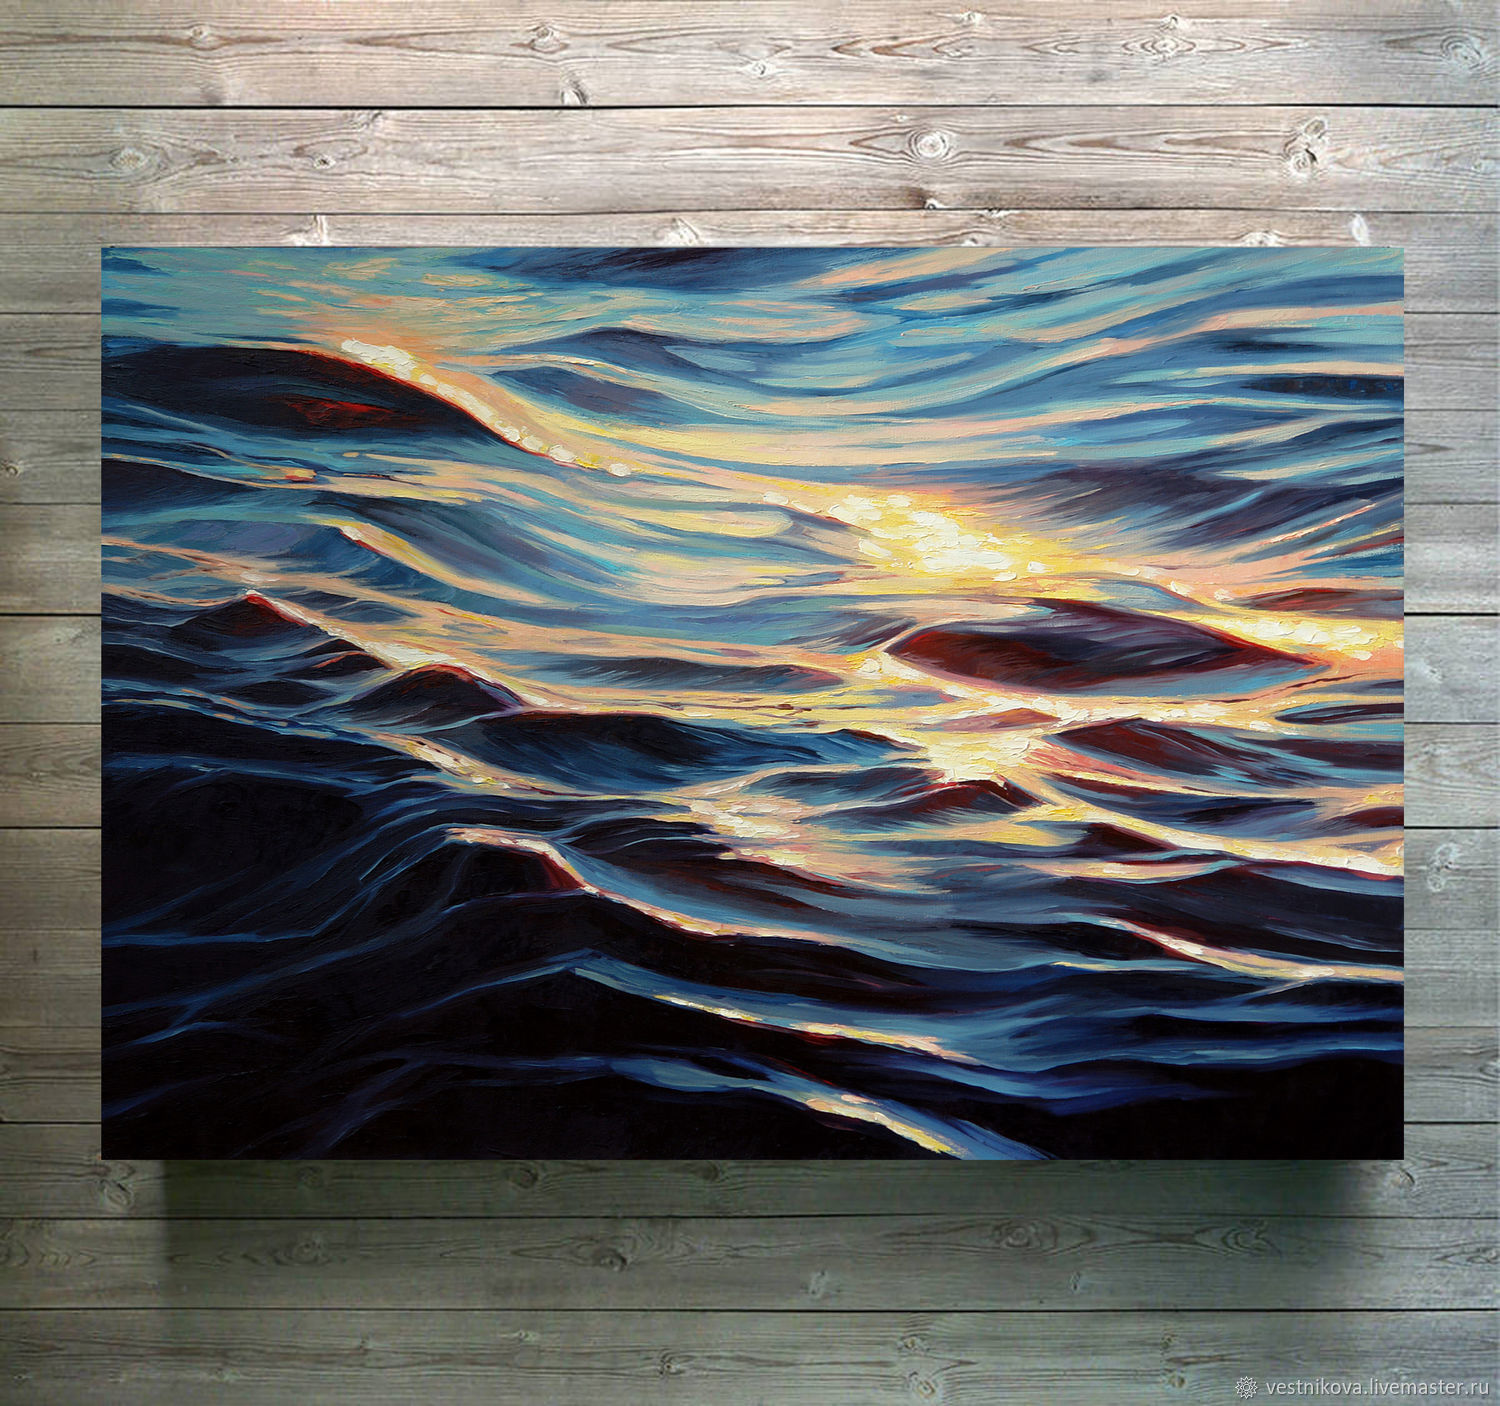 Painting 'The glare of the sun on the water' oil on canvas 50h70 cm, Pictures, Moscow,  Фото №1